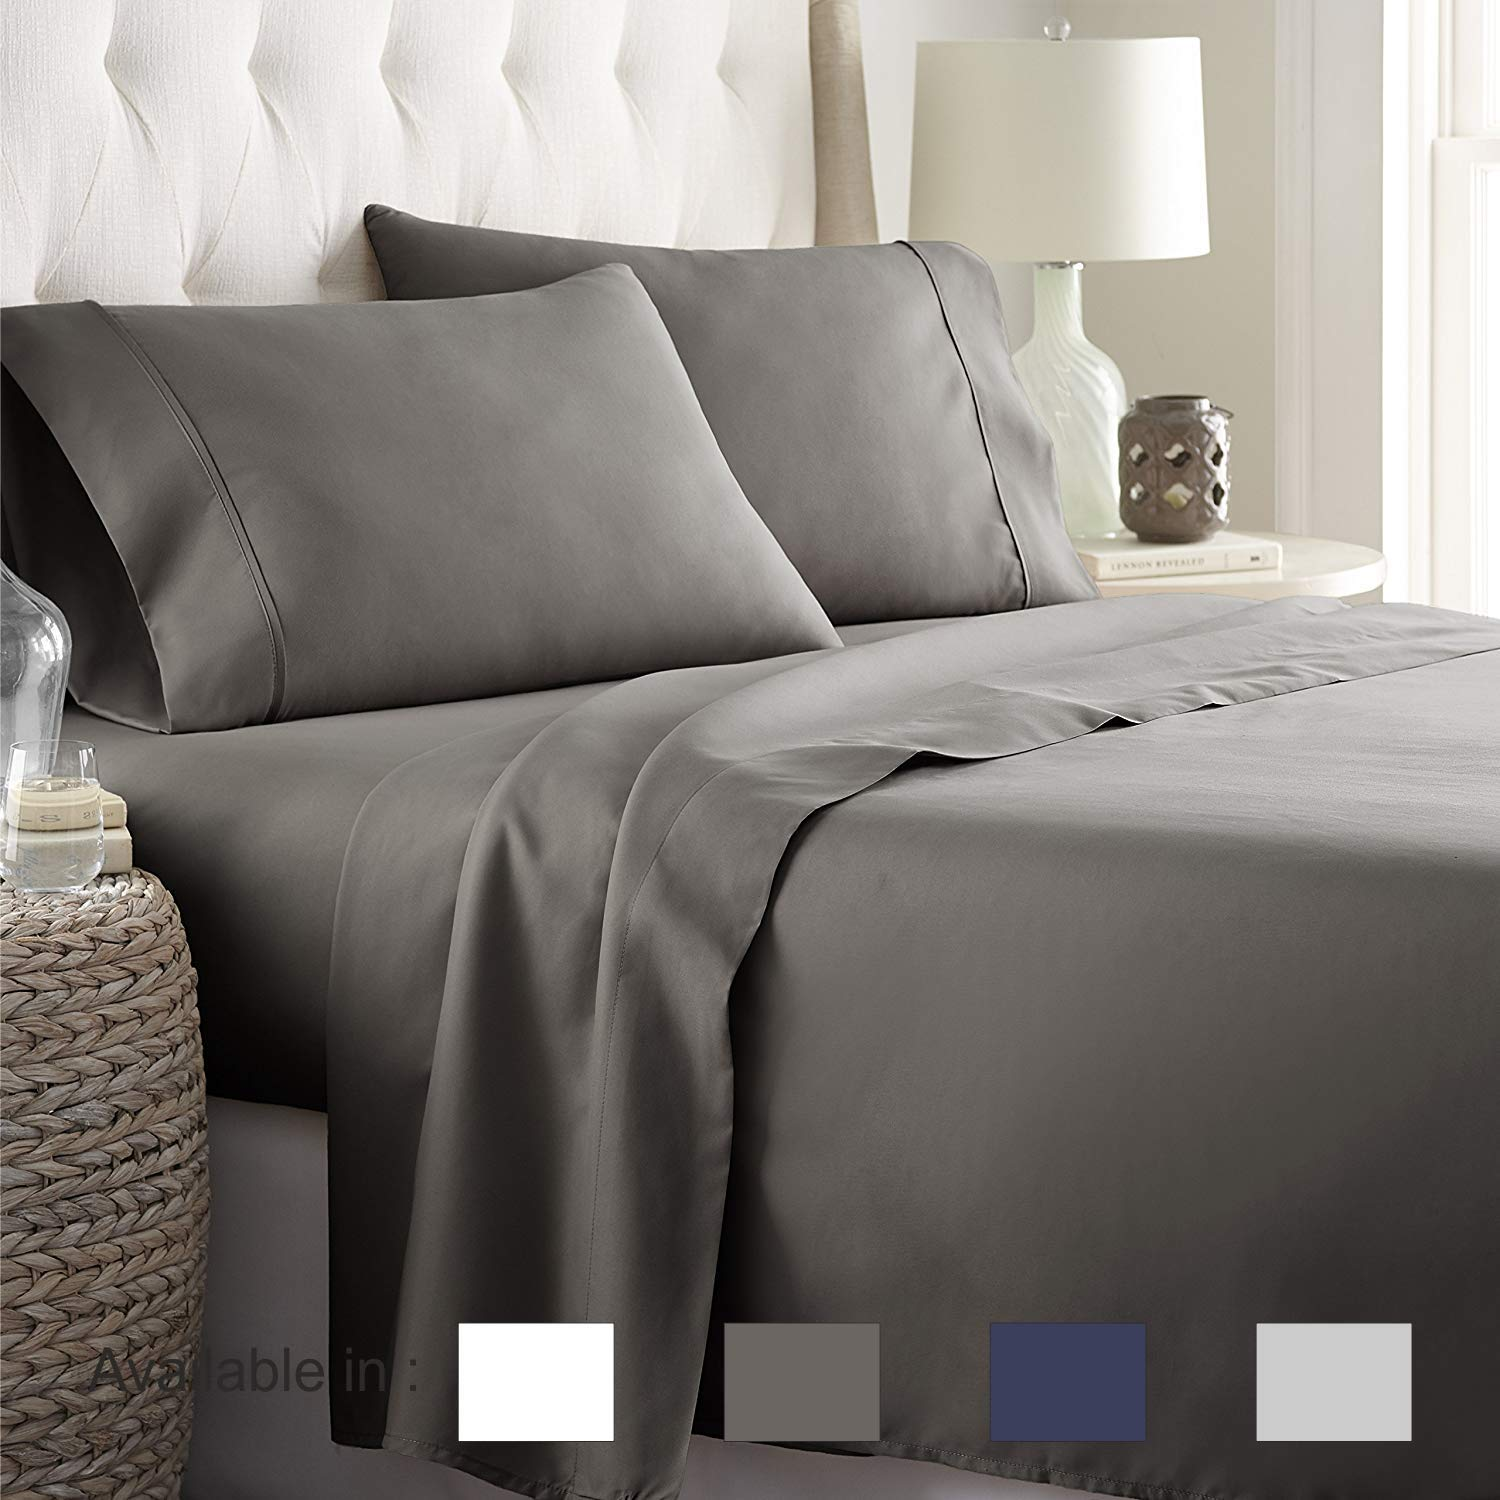 Full-Xl sheets Extra Deep Pockets 15 Inch 500 Thread Count 4 Piece Sheet Set 100% Cotton Sheet Set Dark Grey Solid Sheet,long staple cotton Bedsheet And Pillow Cover,Sateen Finish,Soft,Breadthable